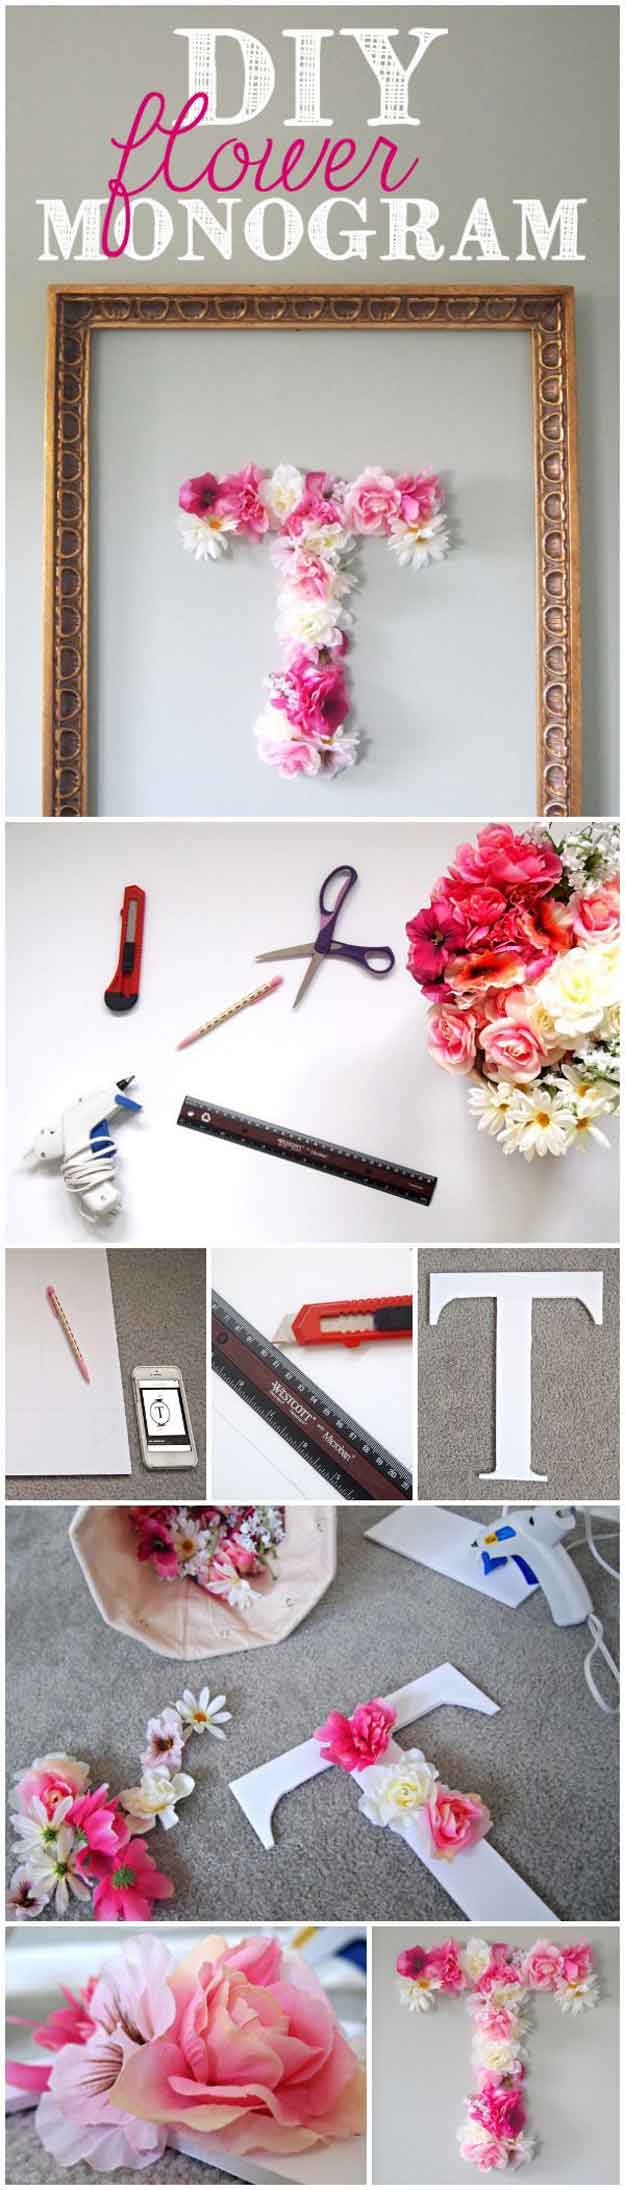 cute diy room decor ideas for teens diy bedroom projects for teenagers diy flower - Diy Room Decor Ideas